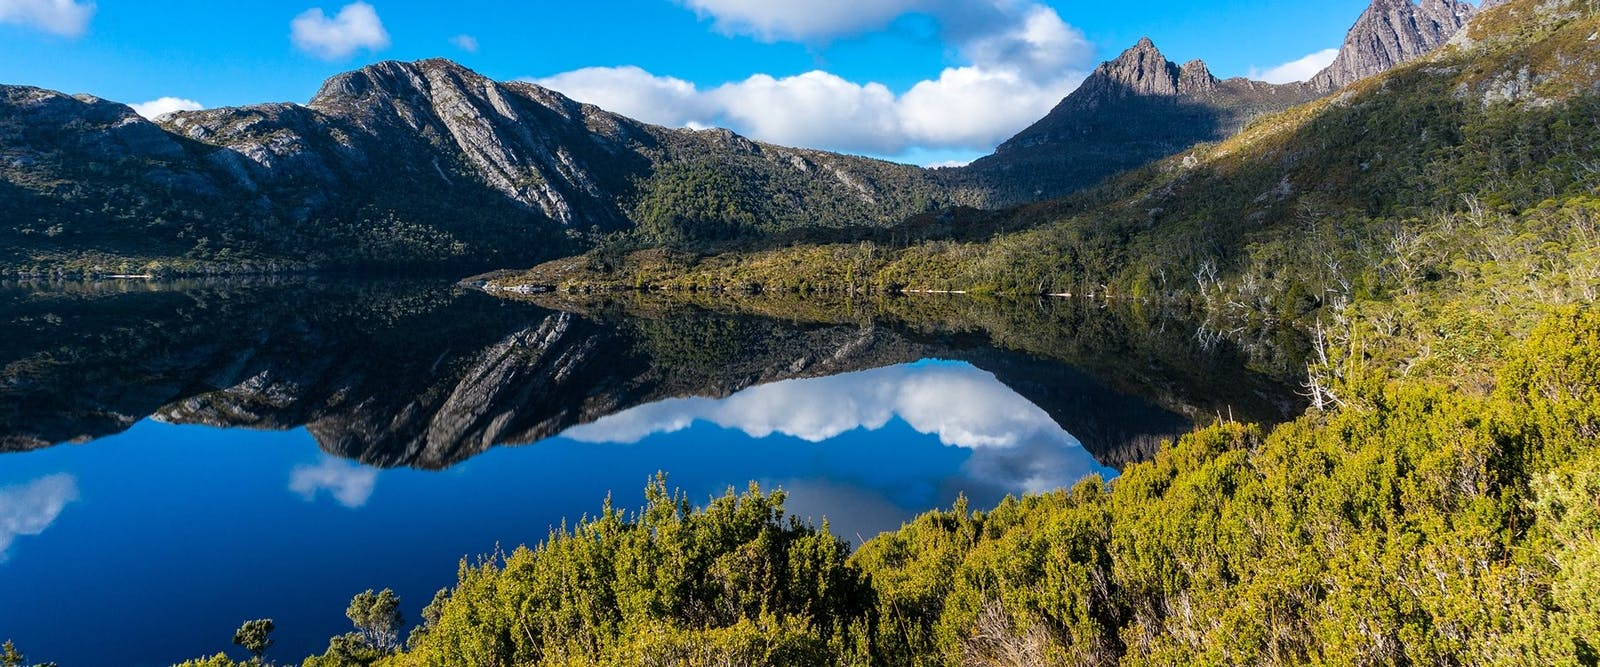 strahan to cradle mountain national park